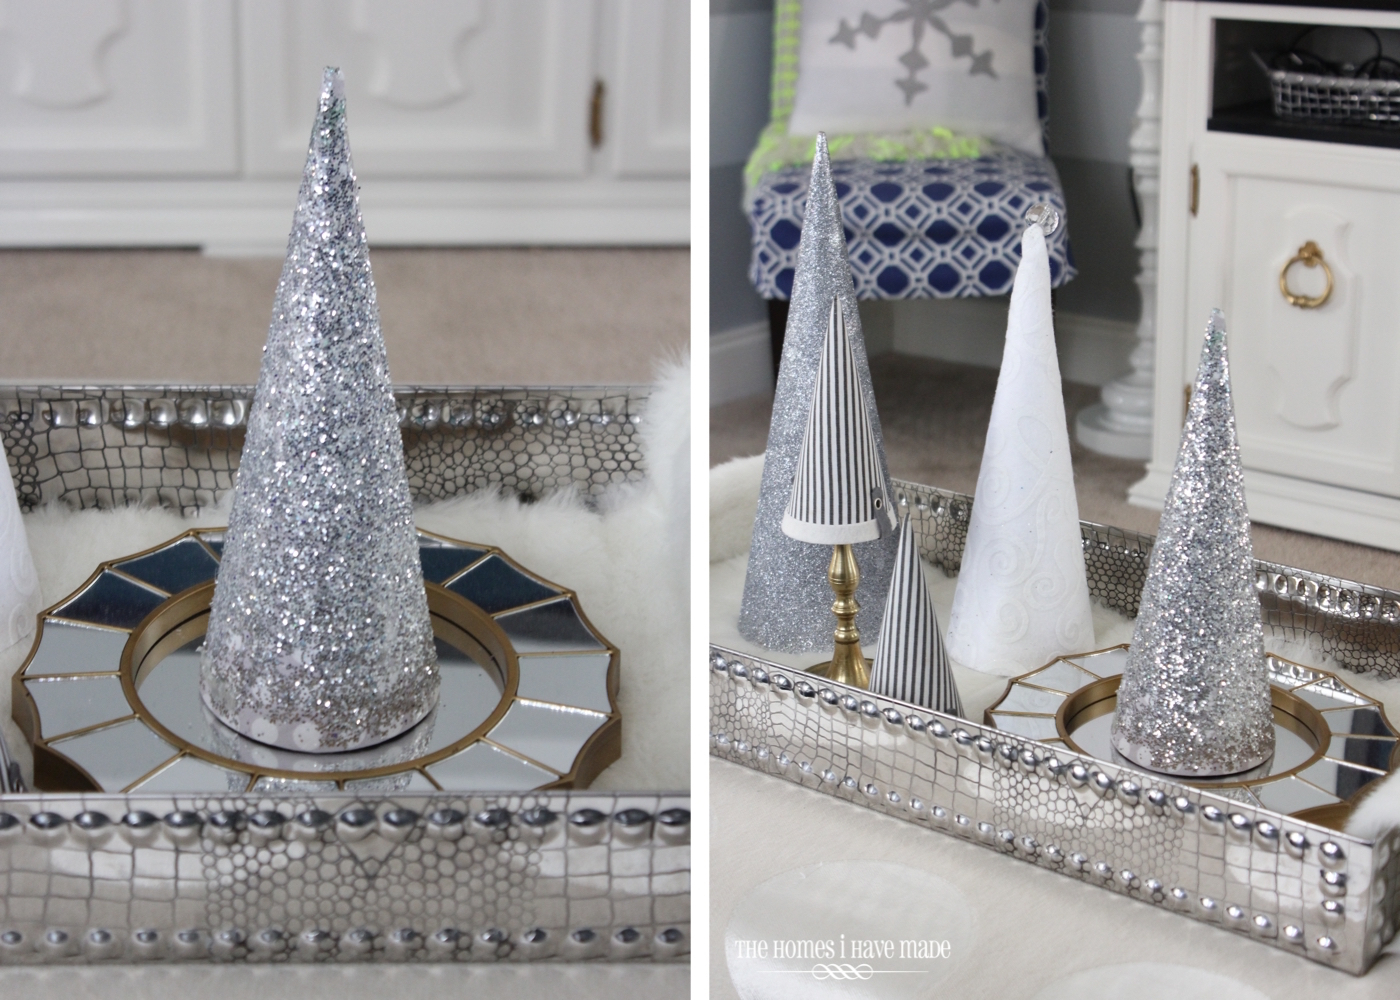 Holiday Home Tour 2014-017